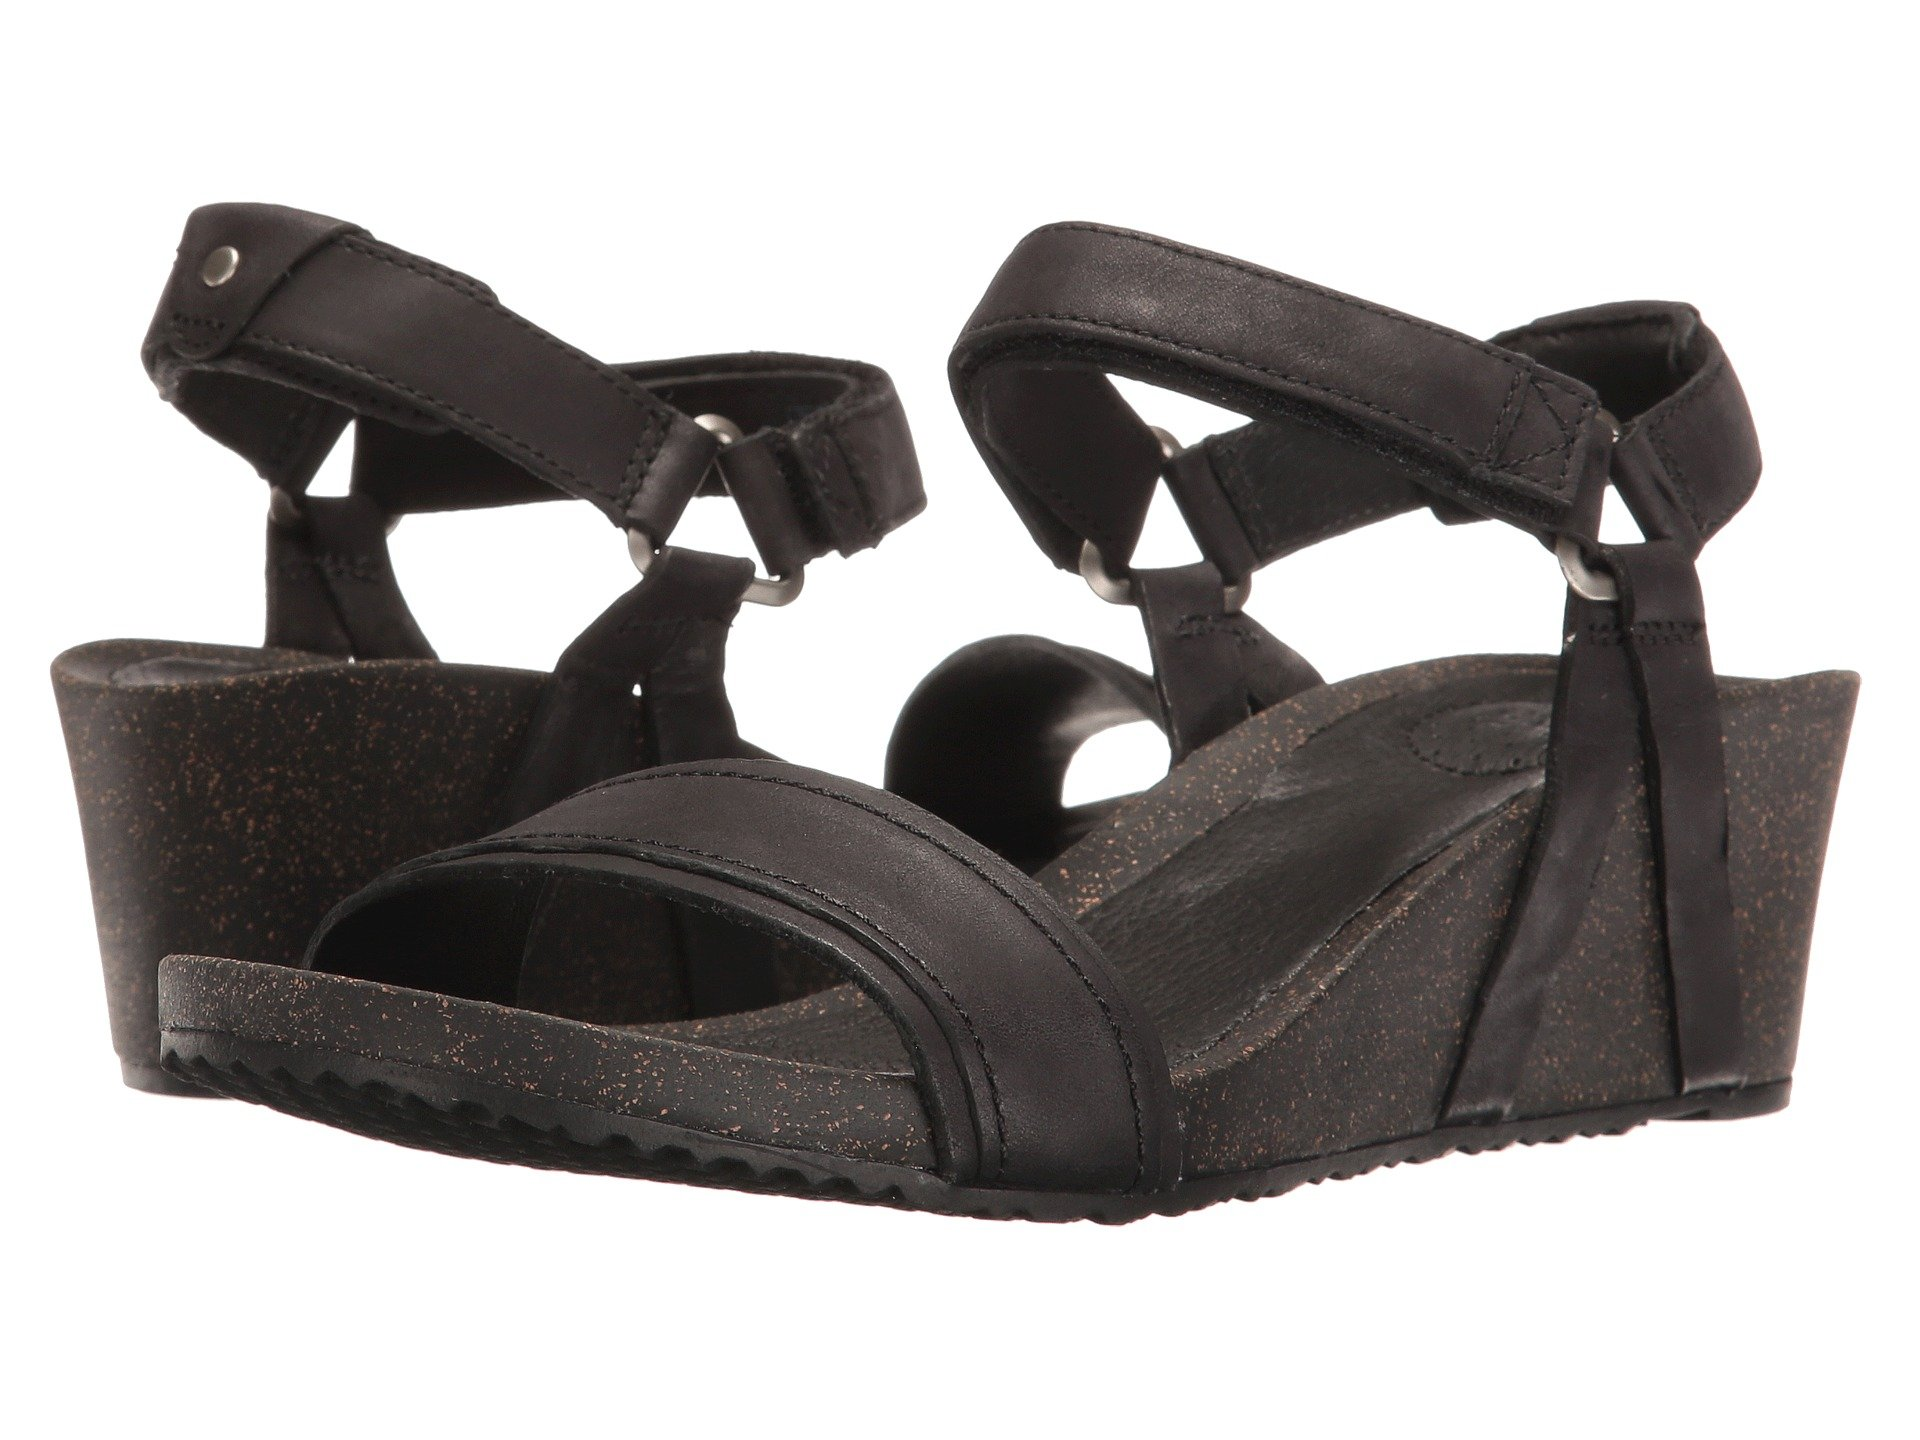 1851fcf2c3b38 Women s Teva Sandals + FREE SHIPPING